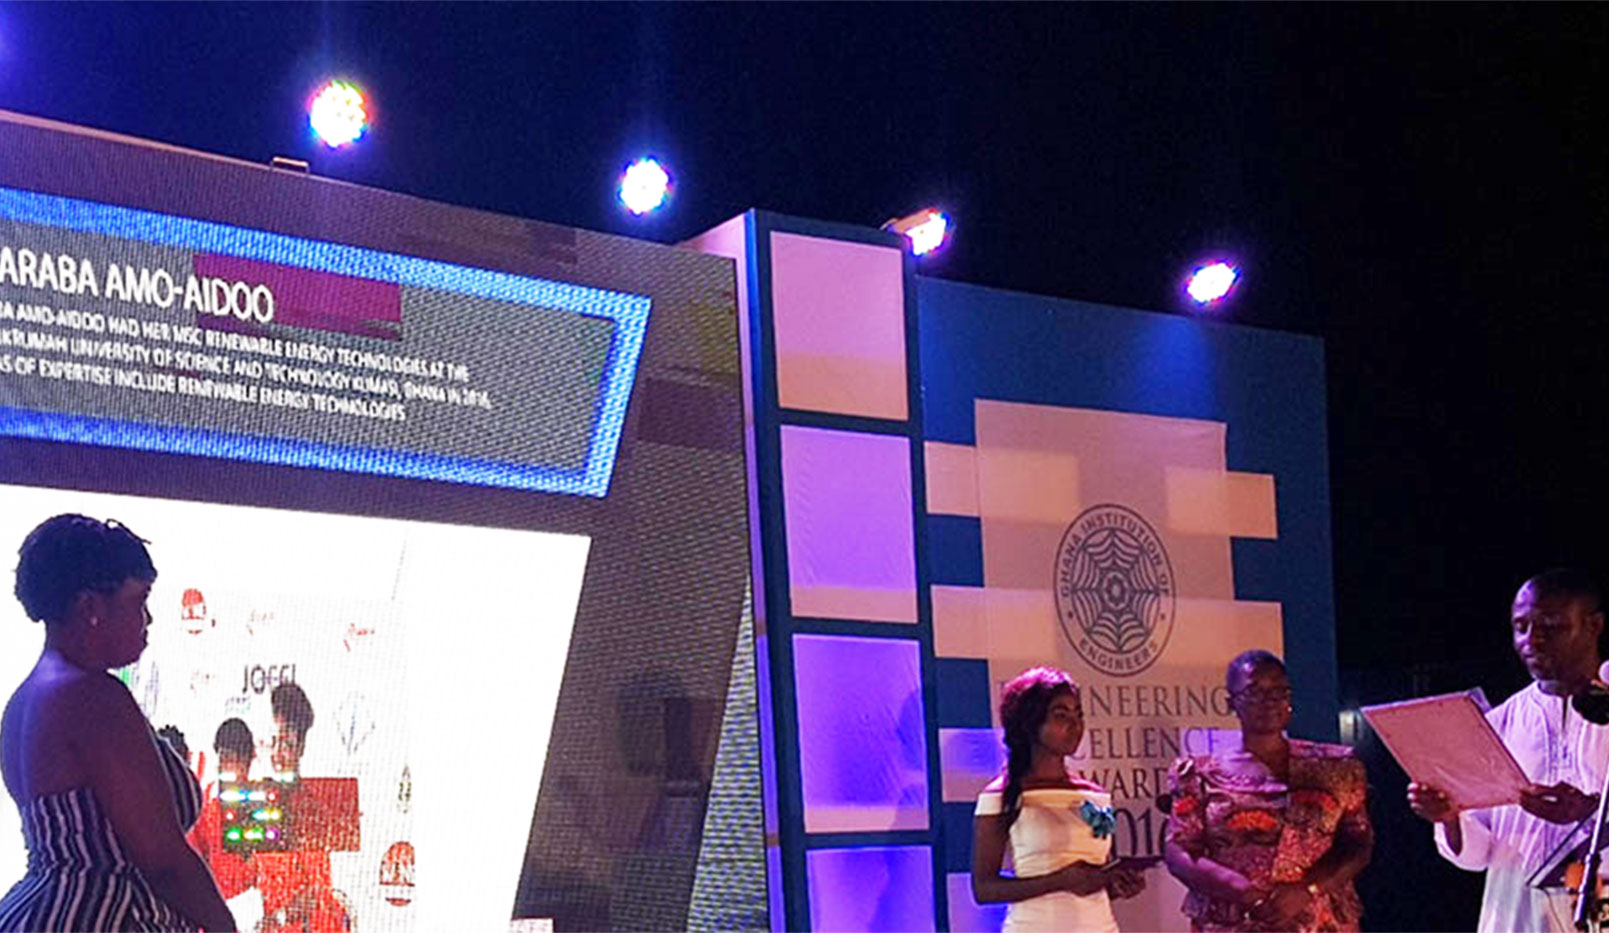 Picture shows: Ing.Araba Amo-Aido on stage receiving an award